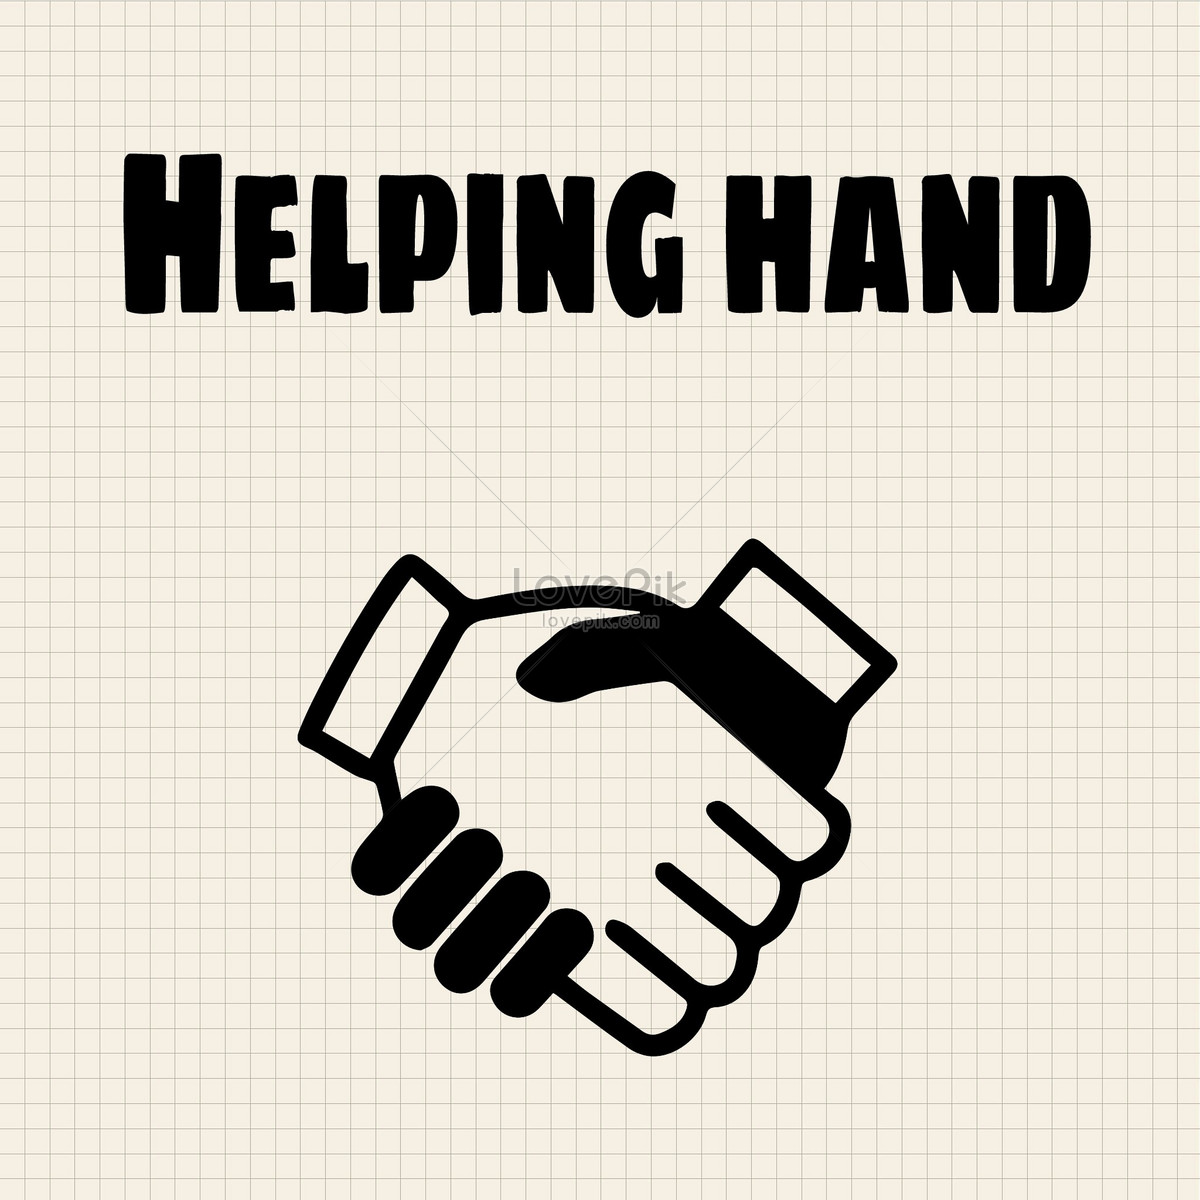 Hold Two Hands Together Photo Imagepicture Free Download